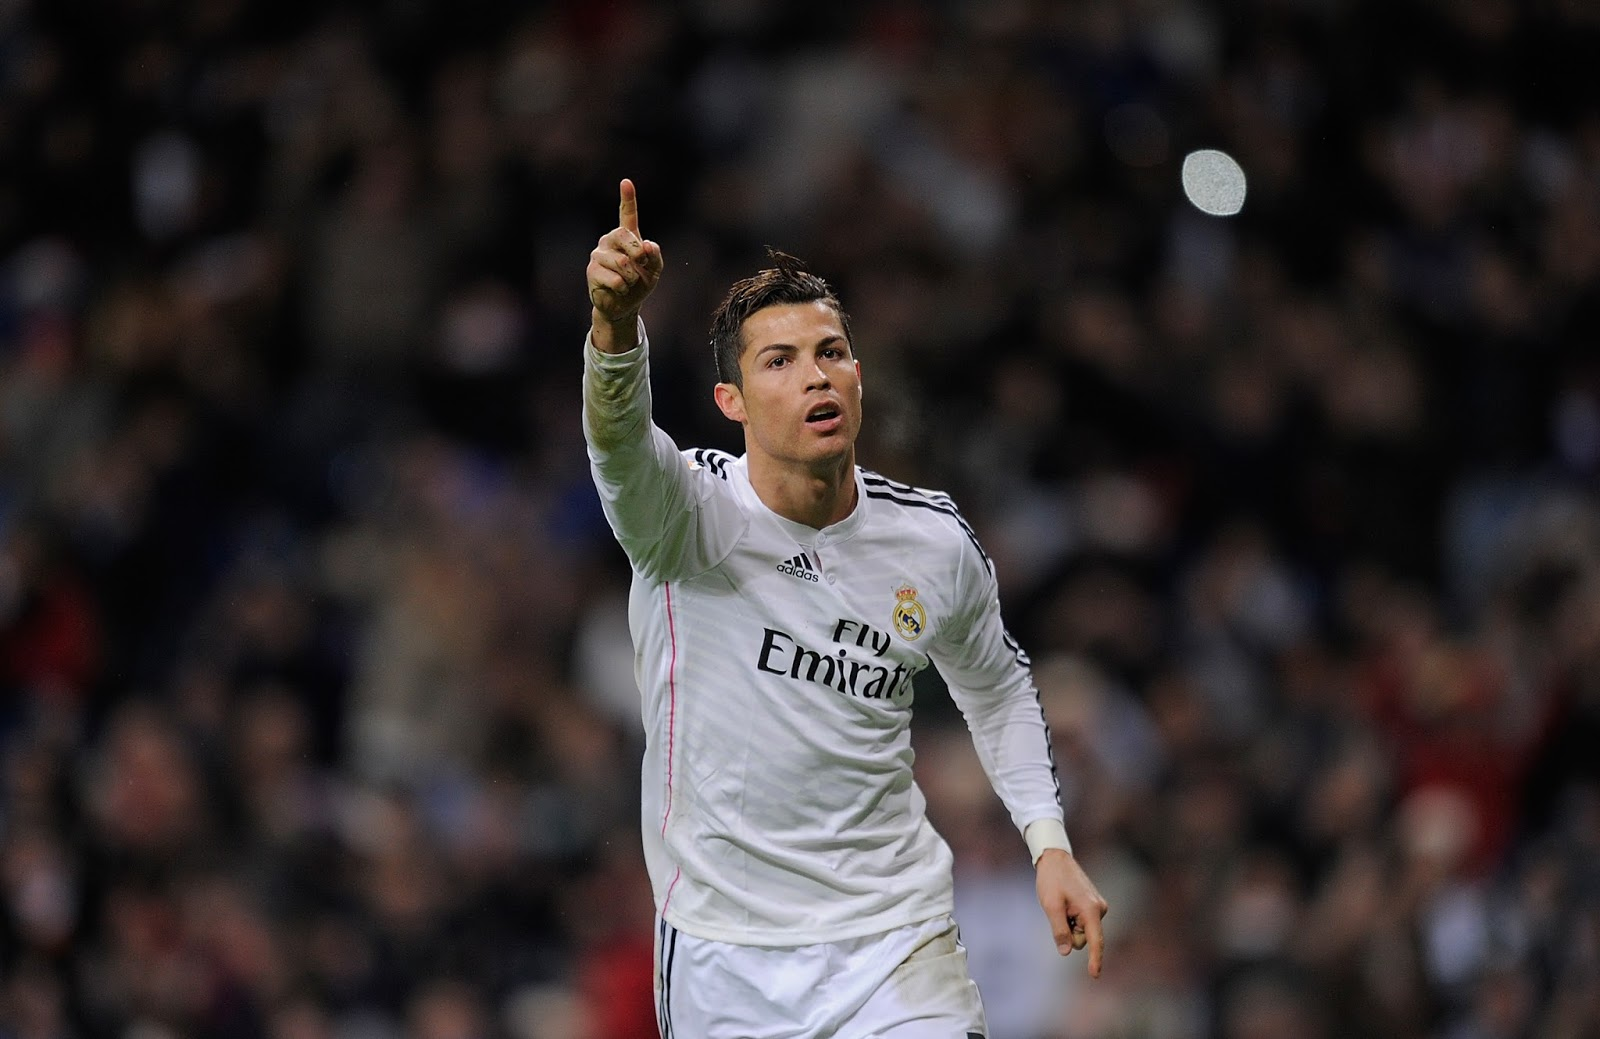 Cristiano Ronaldo is the first athlete with 200M followers